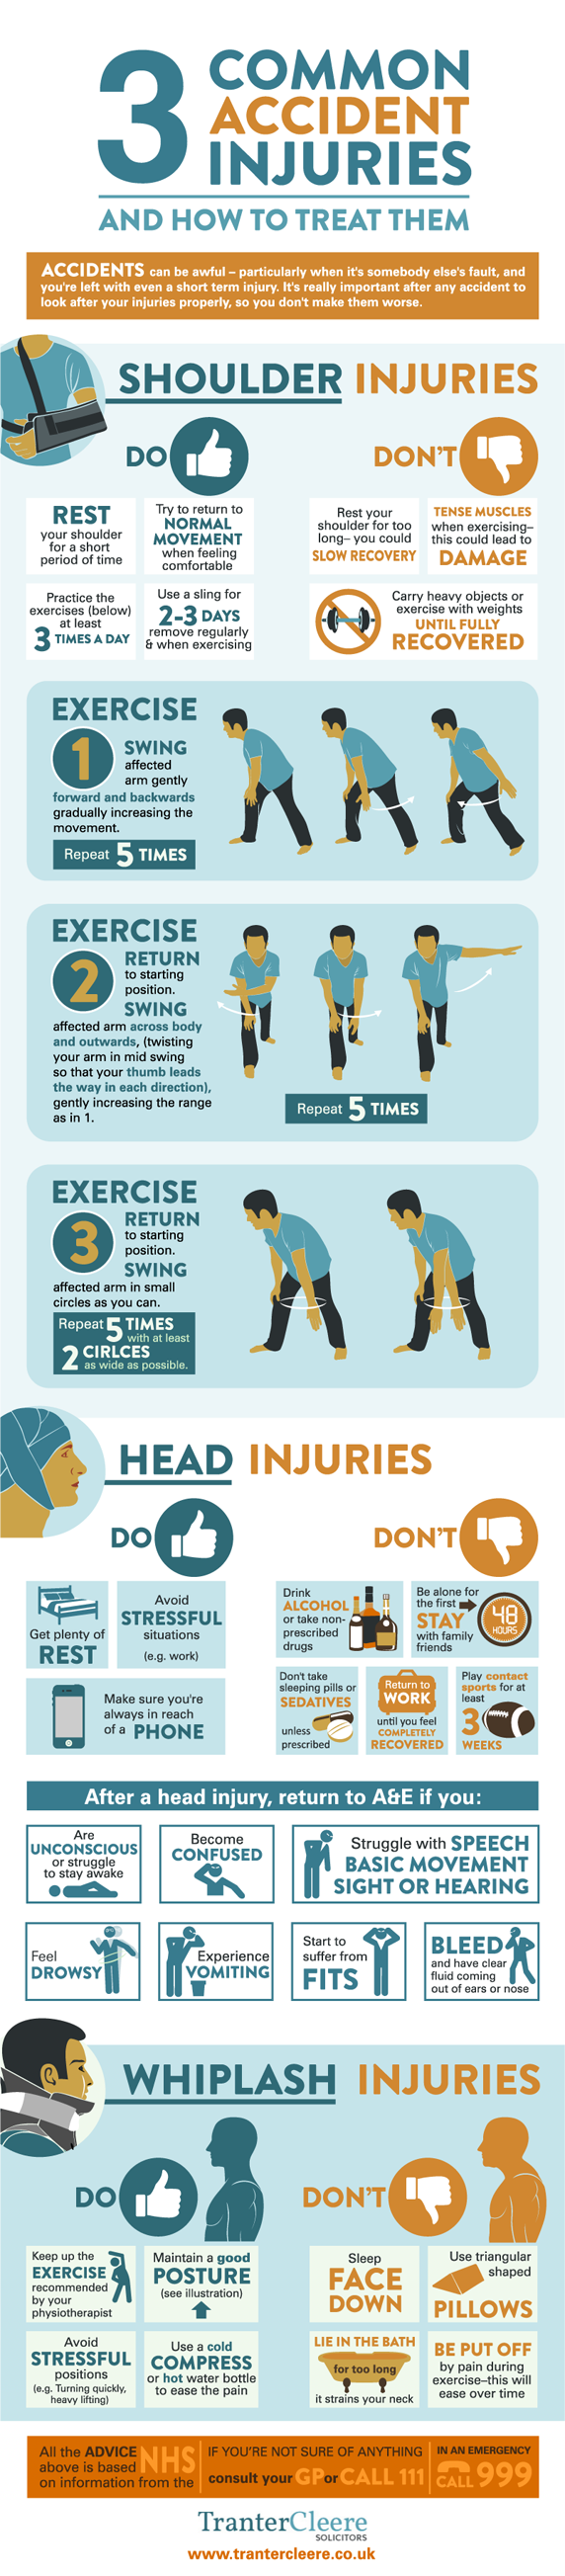 Common Accidents & Caring For Your Injuries